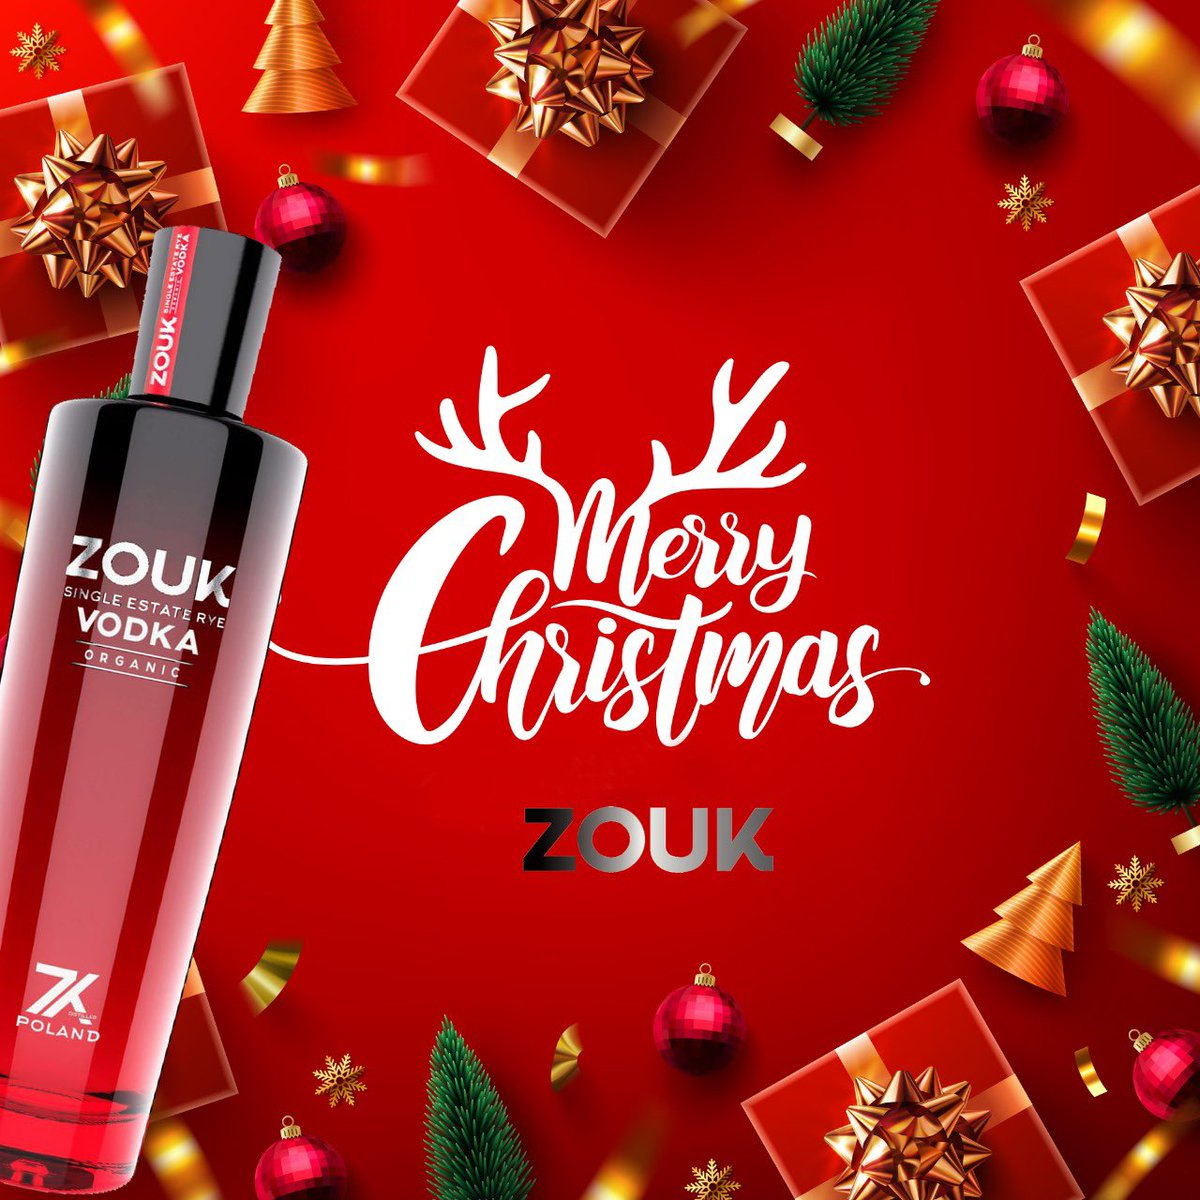 From everyone at #ZOUK , we'd like to say Thank You for your continued loyalty and faith in us. Put your feet up and have a well-deserved rest this Christmas and let every day of the holiday season be filled with joy  #MerryChristmas ❤️  #Vodka #xmas2020 #Christmas #Christmas2020